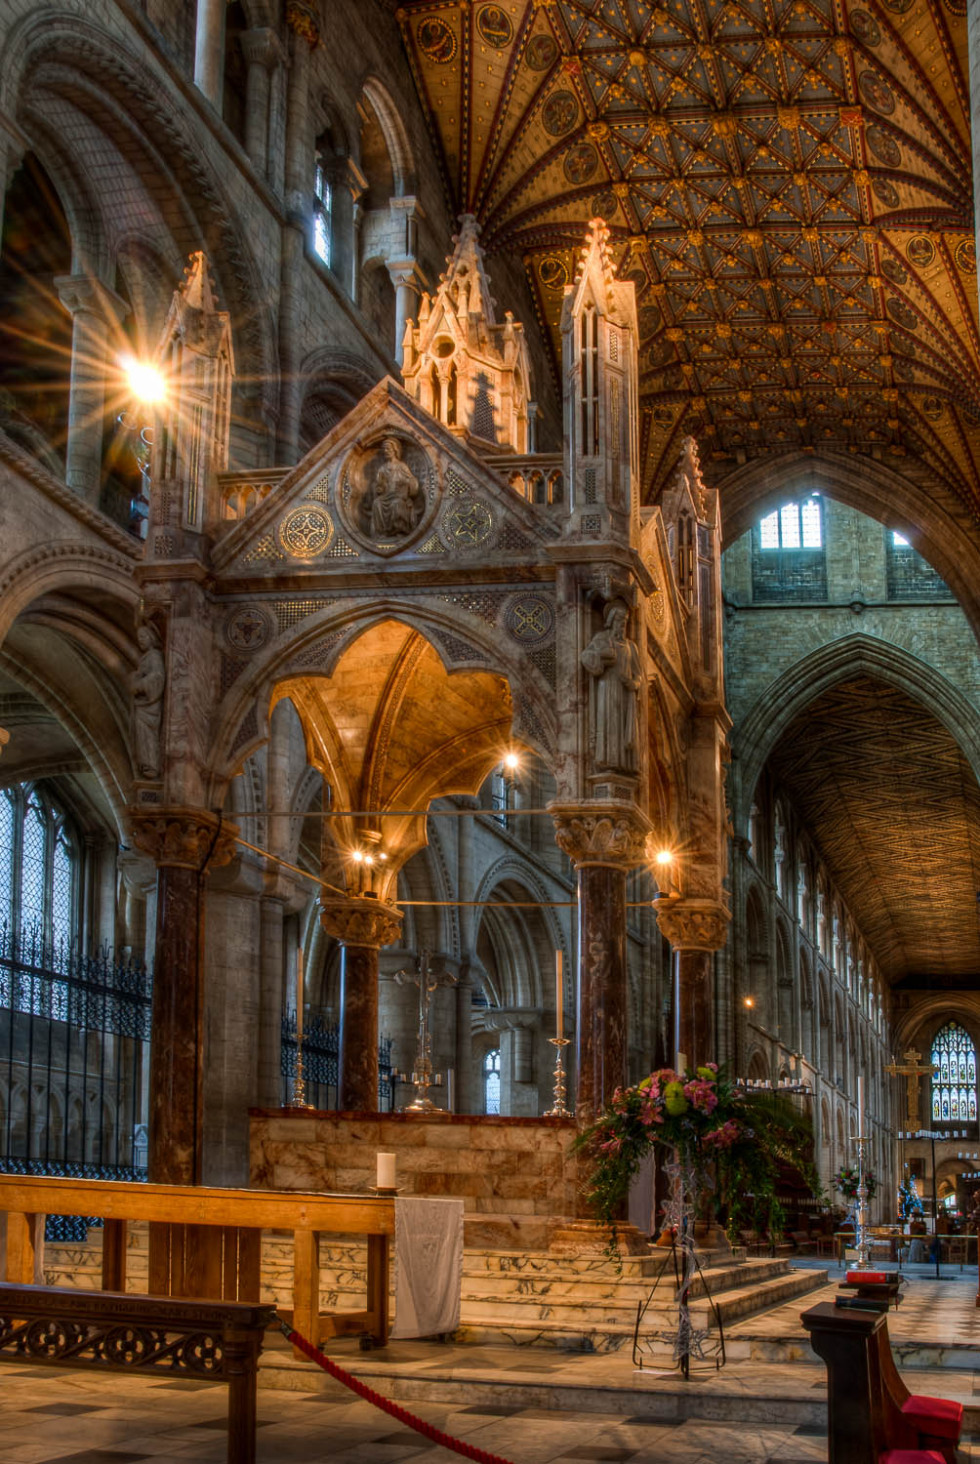 The Altar at Peterborough Cathedral